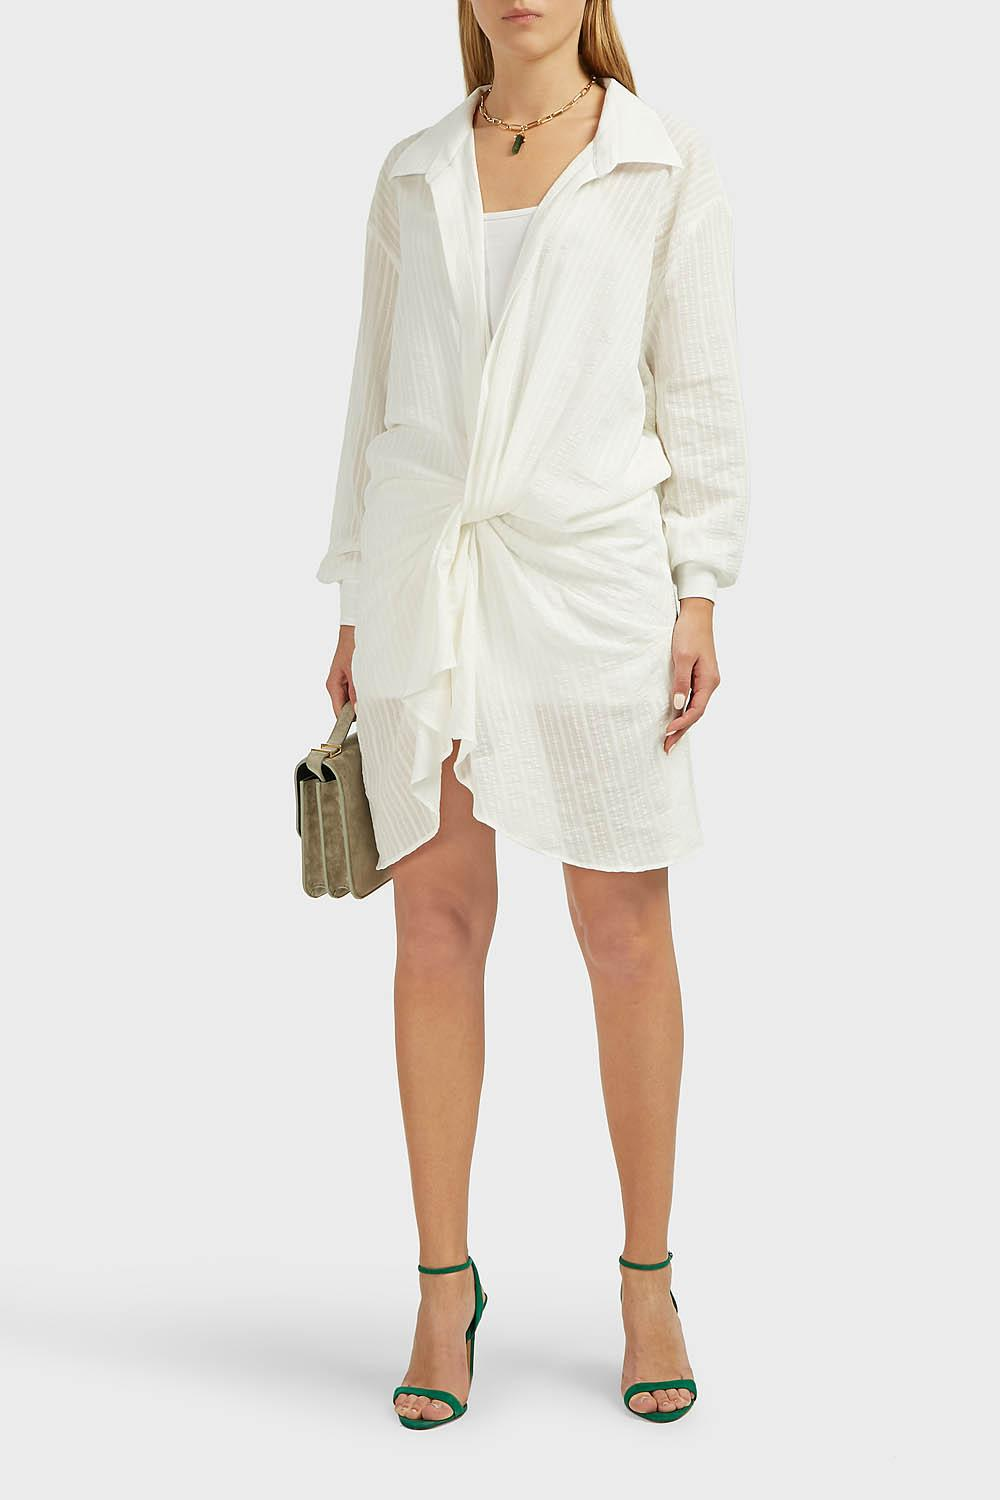 840175dfec Lyst - Jacquemus Alassio Gathered-knot Dress in White